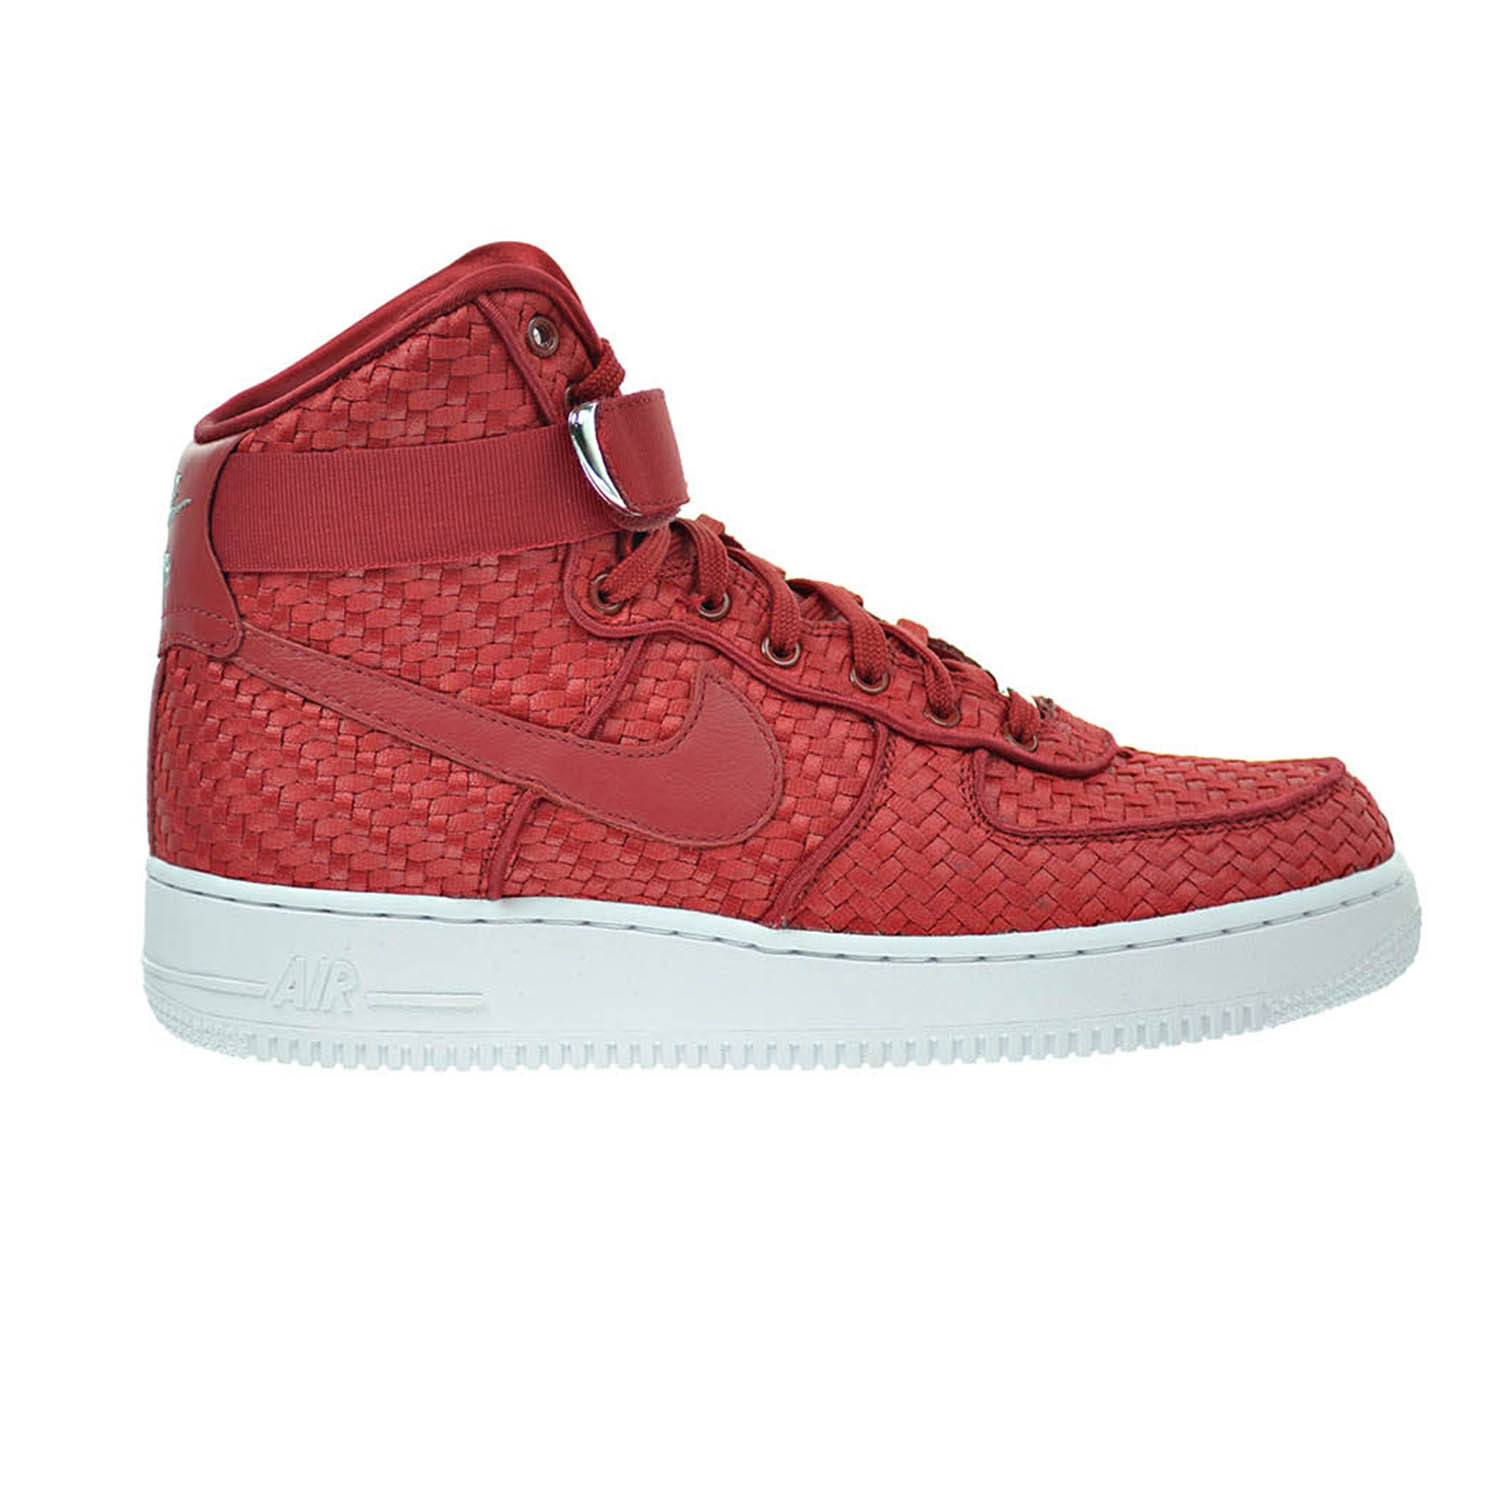 Nike Air Force 1 High '07 Lv8 Woven Men's Shoes Gym Red/W...